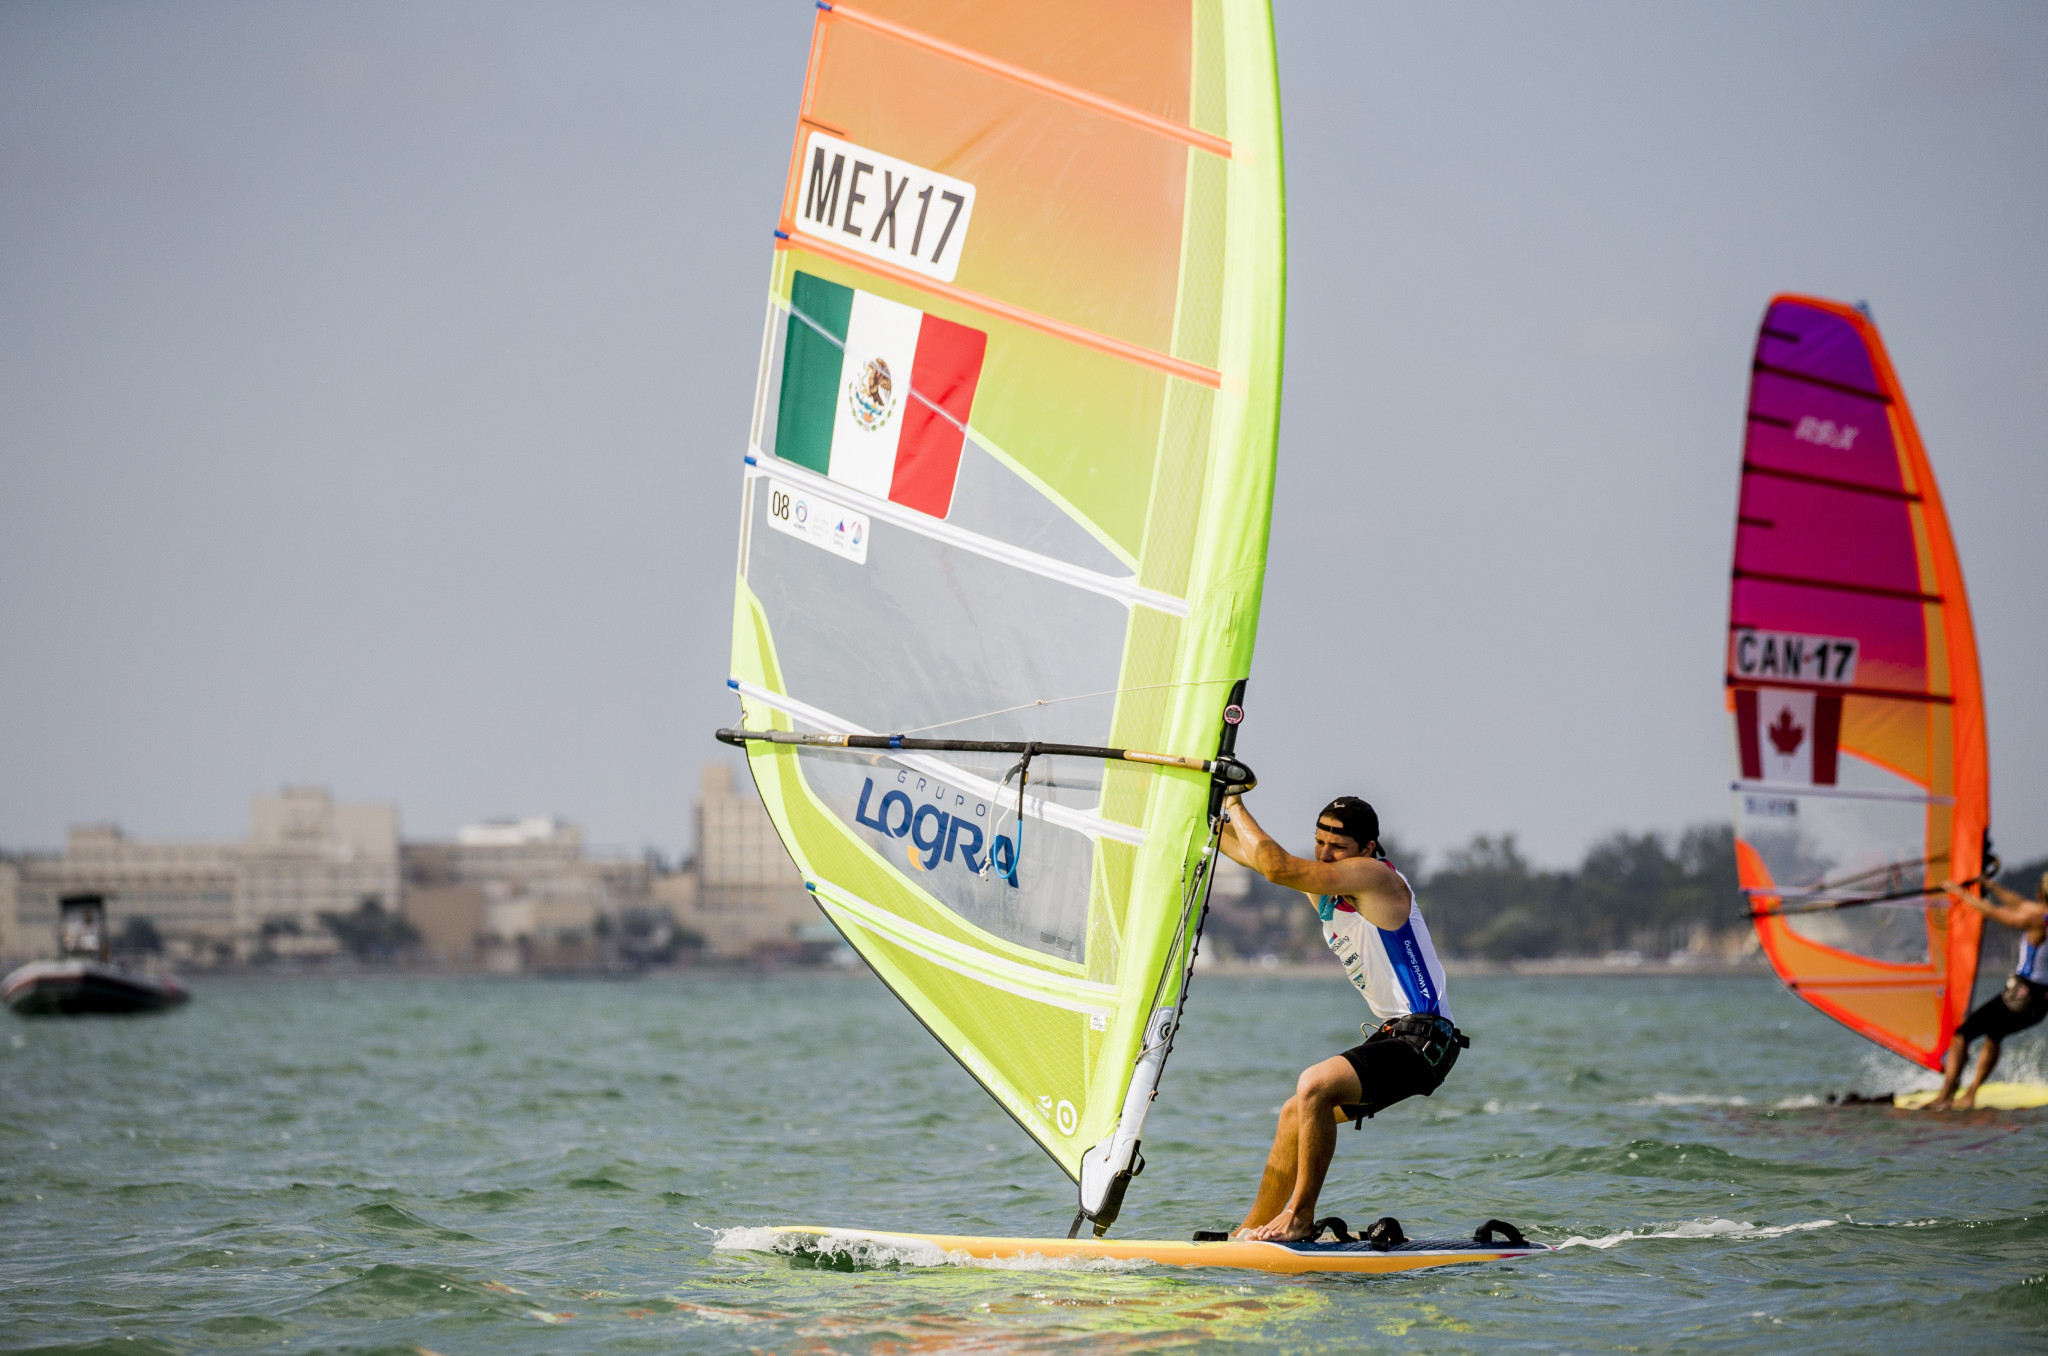 North American sailors are bidding to qualify for Tokyo 2020 if their country has not already made it ©World Sailing